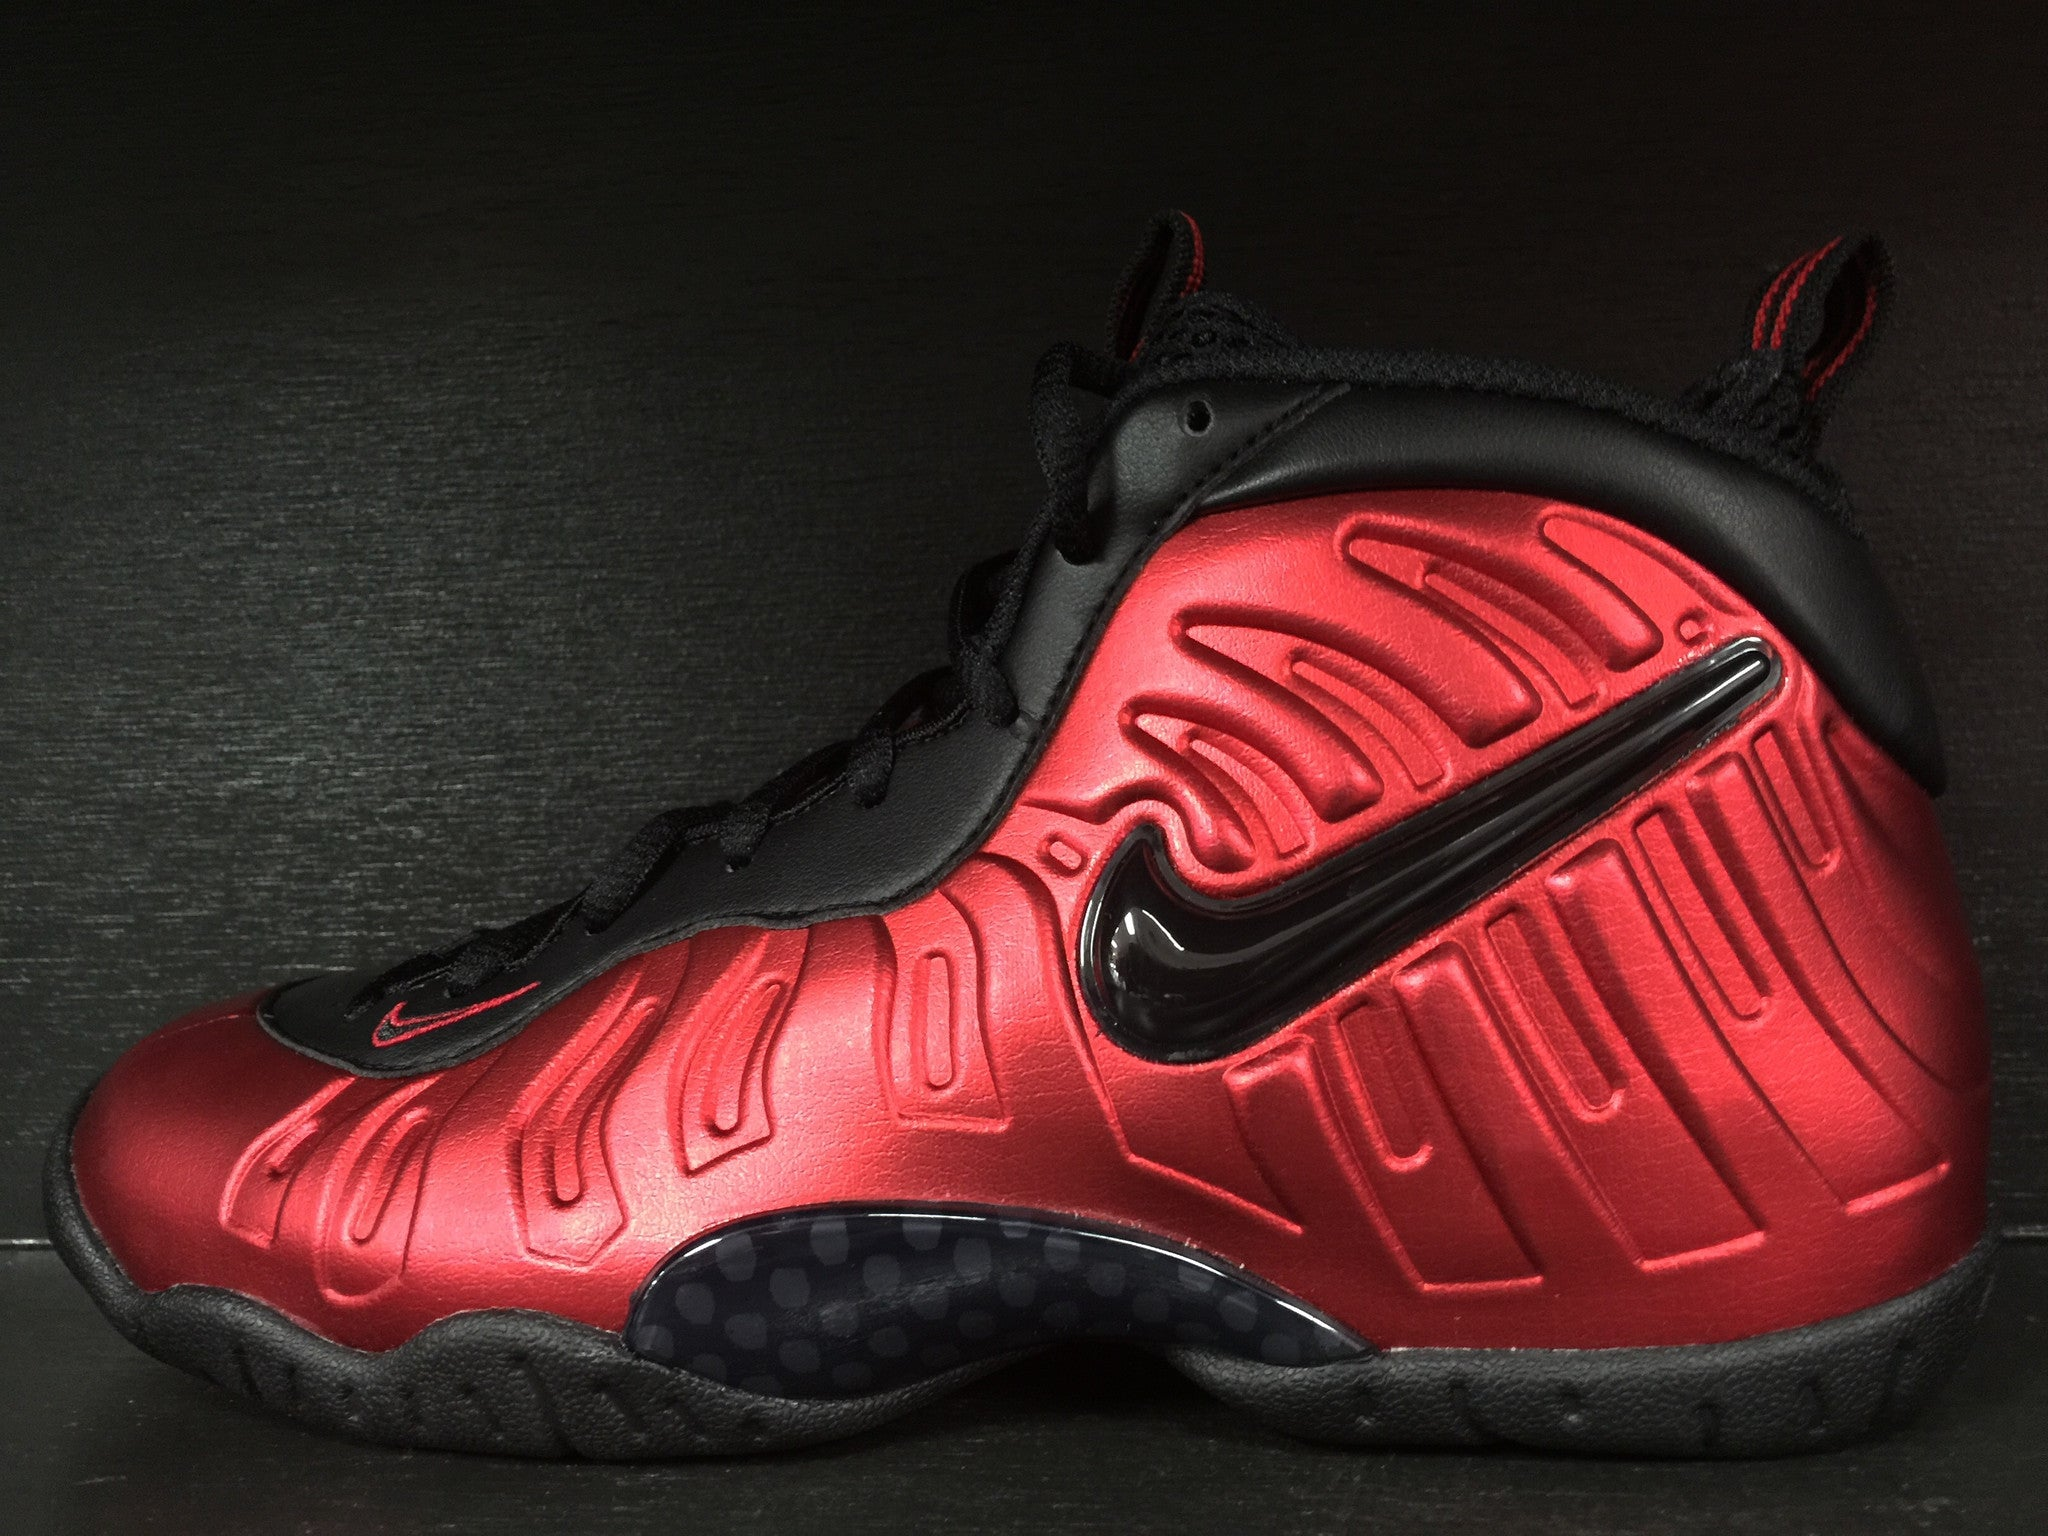 Nike Little Posite Pro (GS) 'University Red'